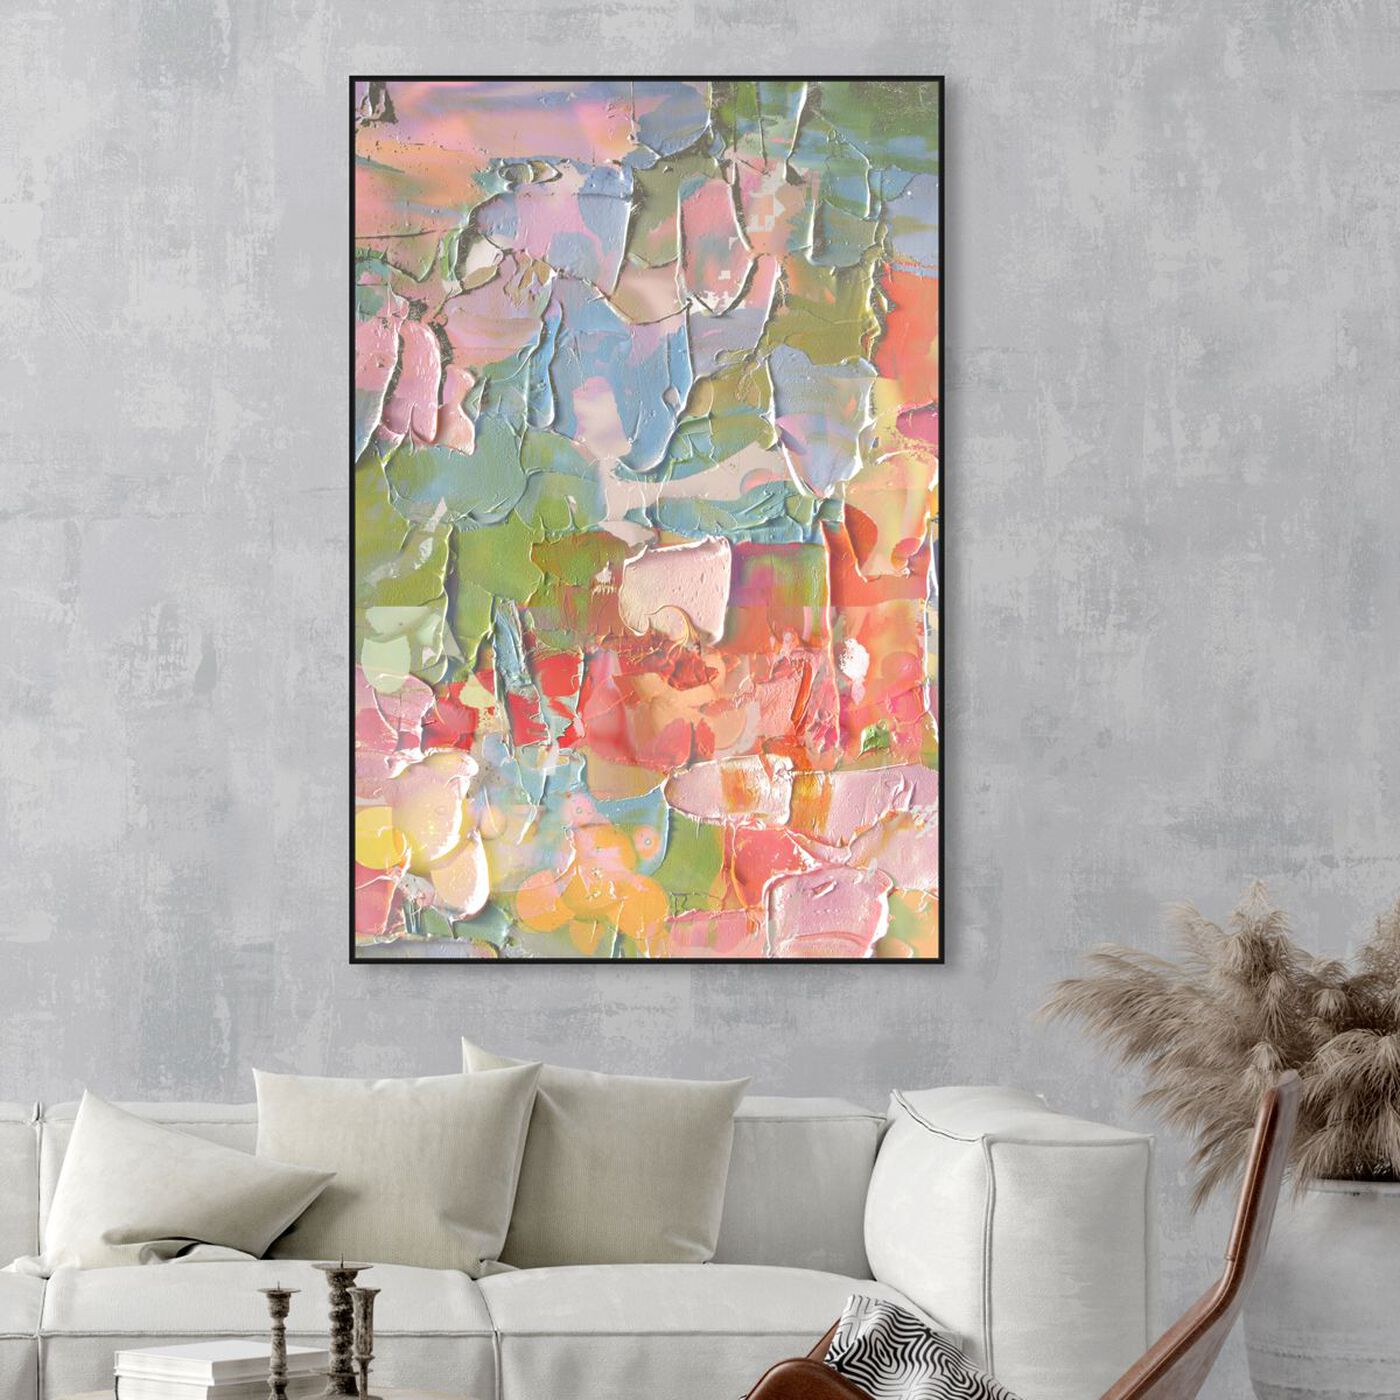 Hanging view of I Feel Happy featuring abstract and textures art.